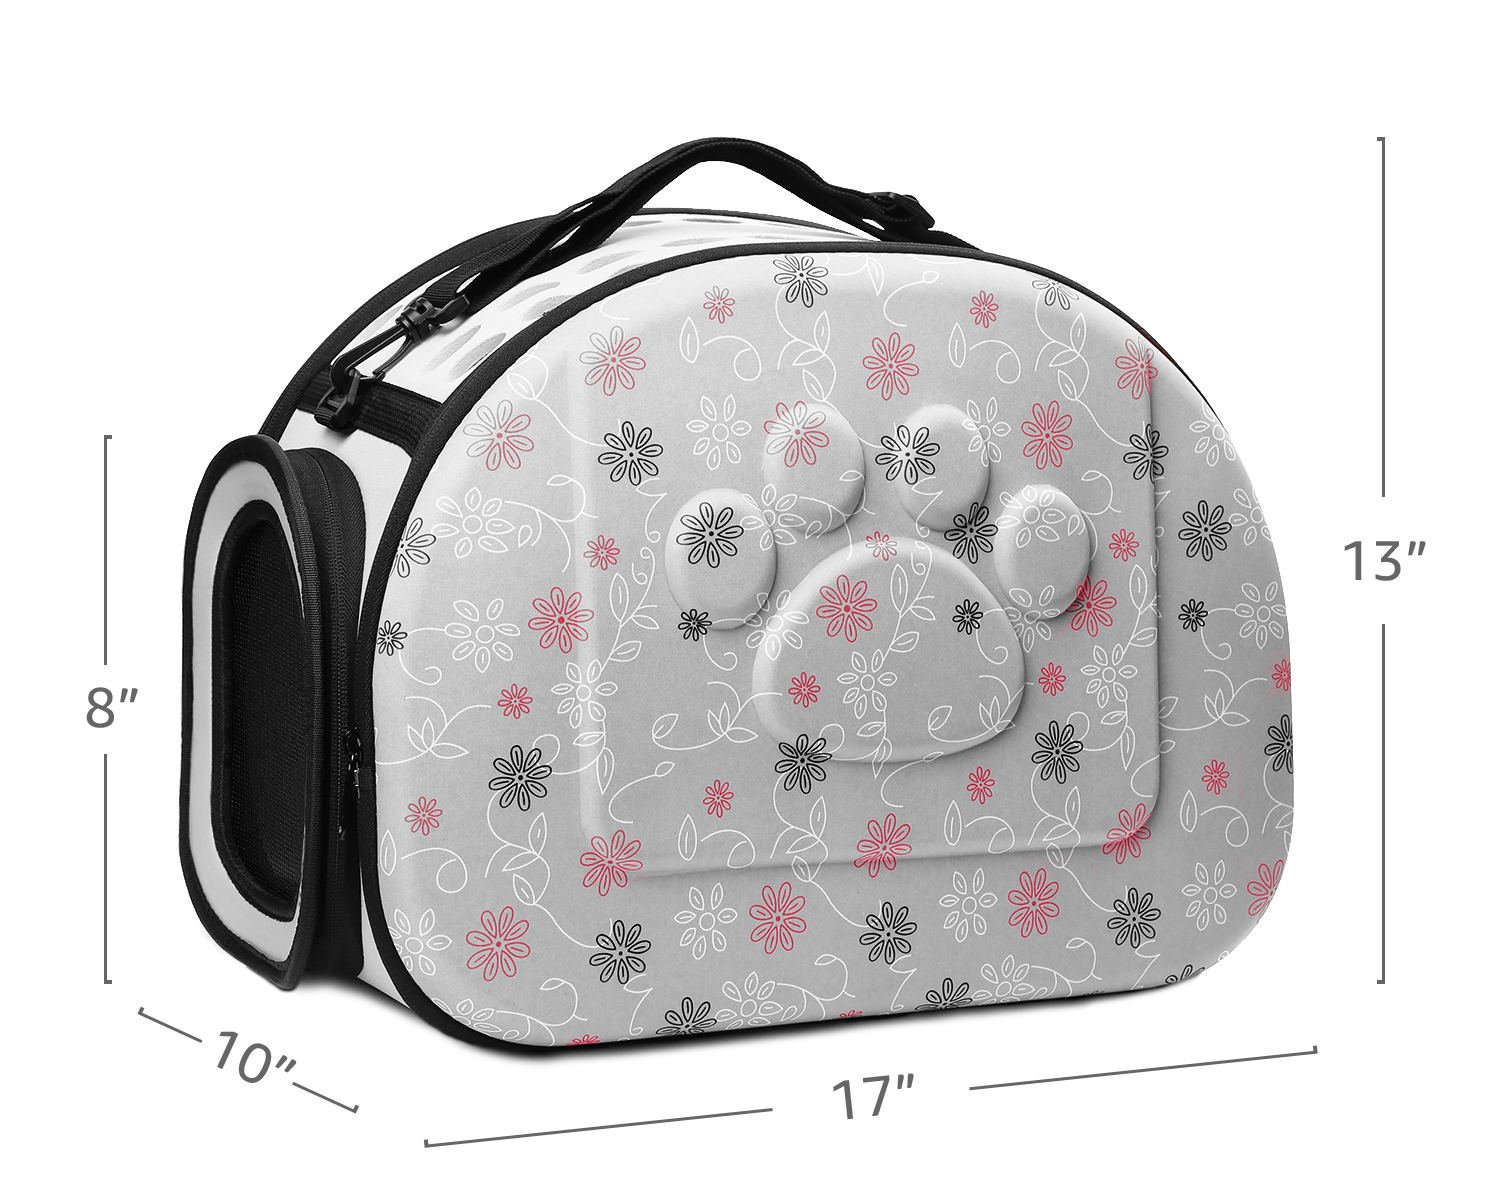 CORALTEA EVA Cute Portable Collapsible for Pets of Medium Size Cats & Dogs Airline Approved Outdoor Under Seat Travel Pet Carrier Soft Sided Puppy Bag (gray) by Coraltea (Image #4)